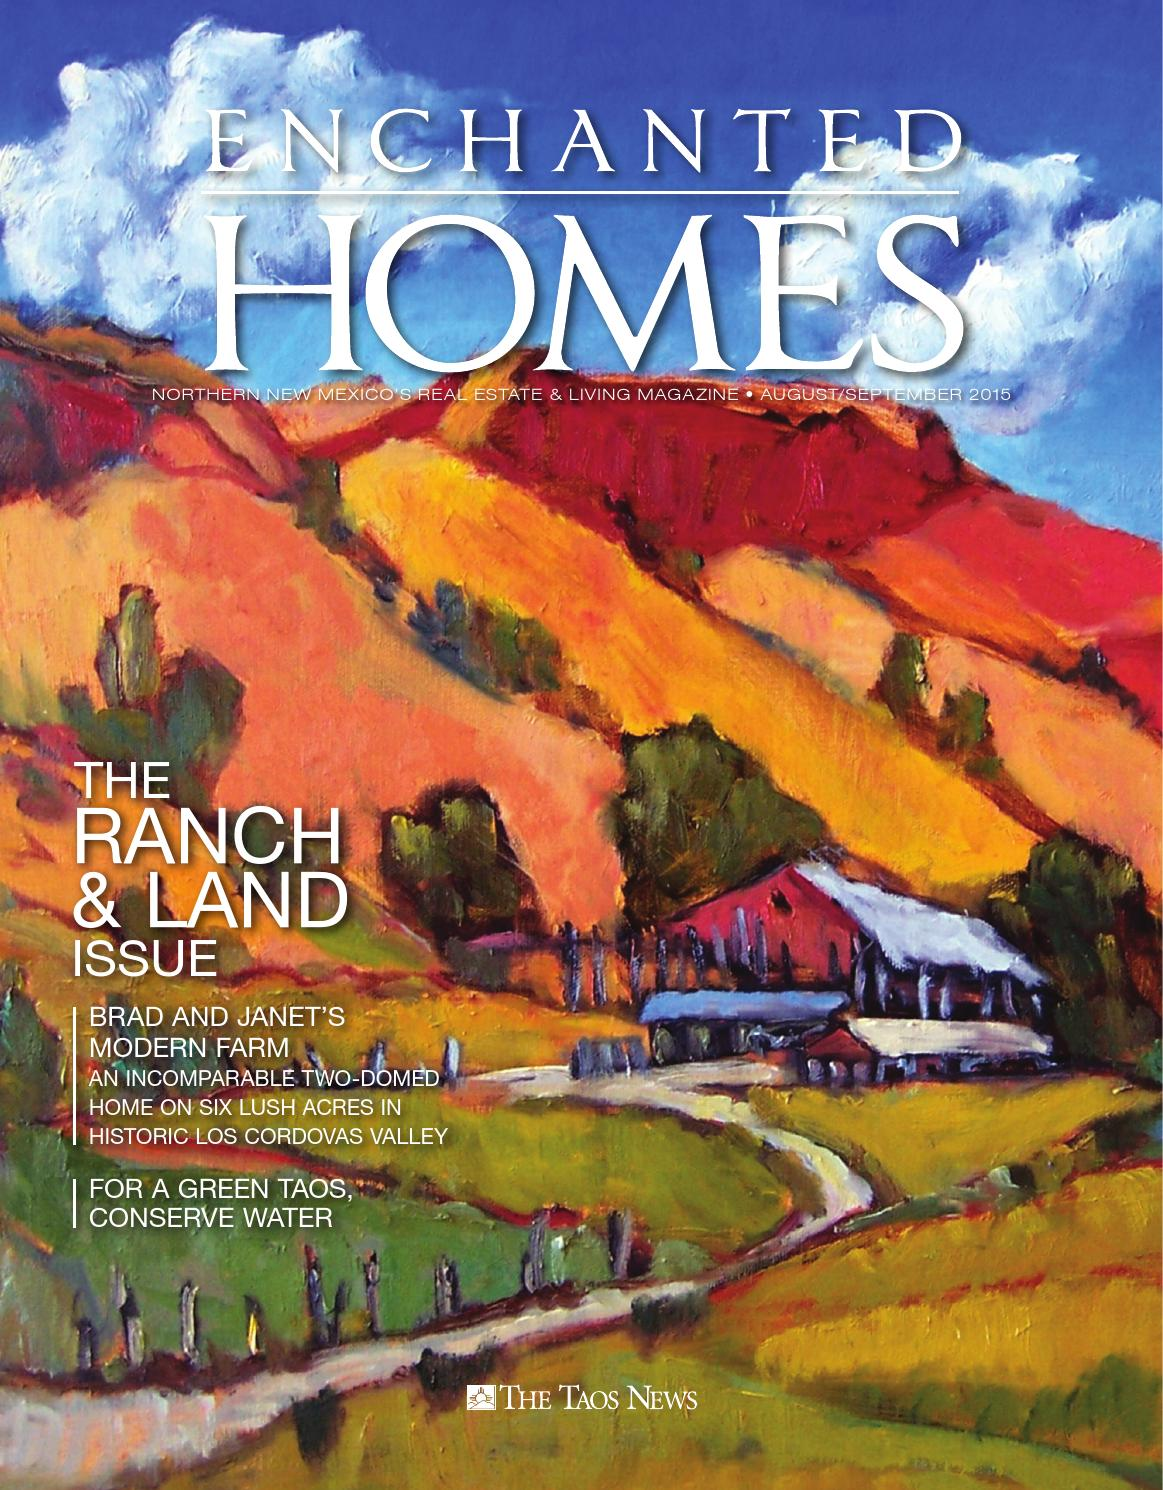 Enchanted homes augustseptember 2015 by the taos news issuu publicscrutiny Images